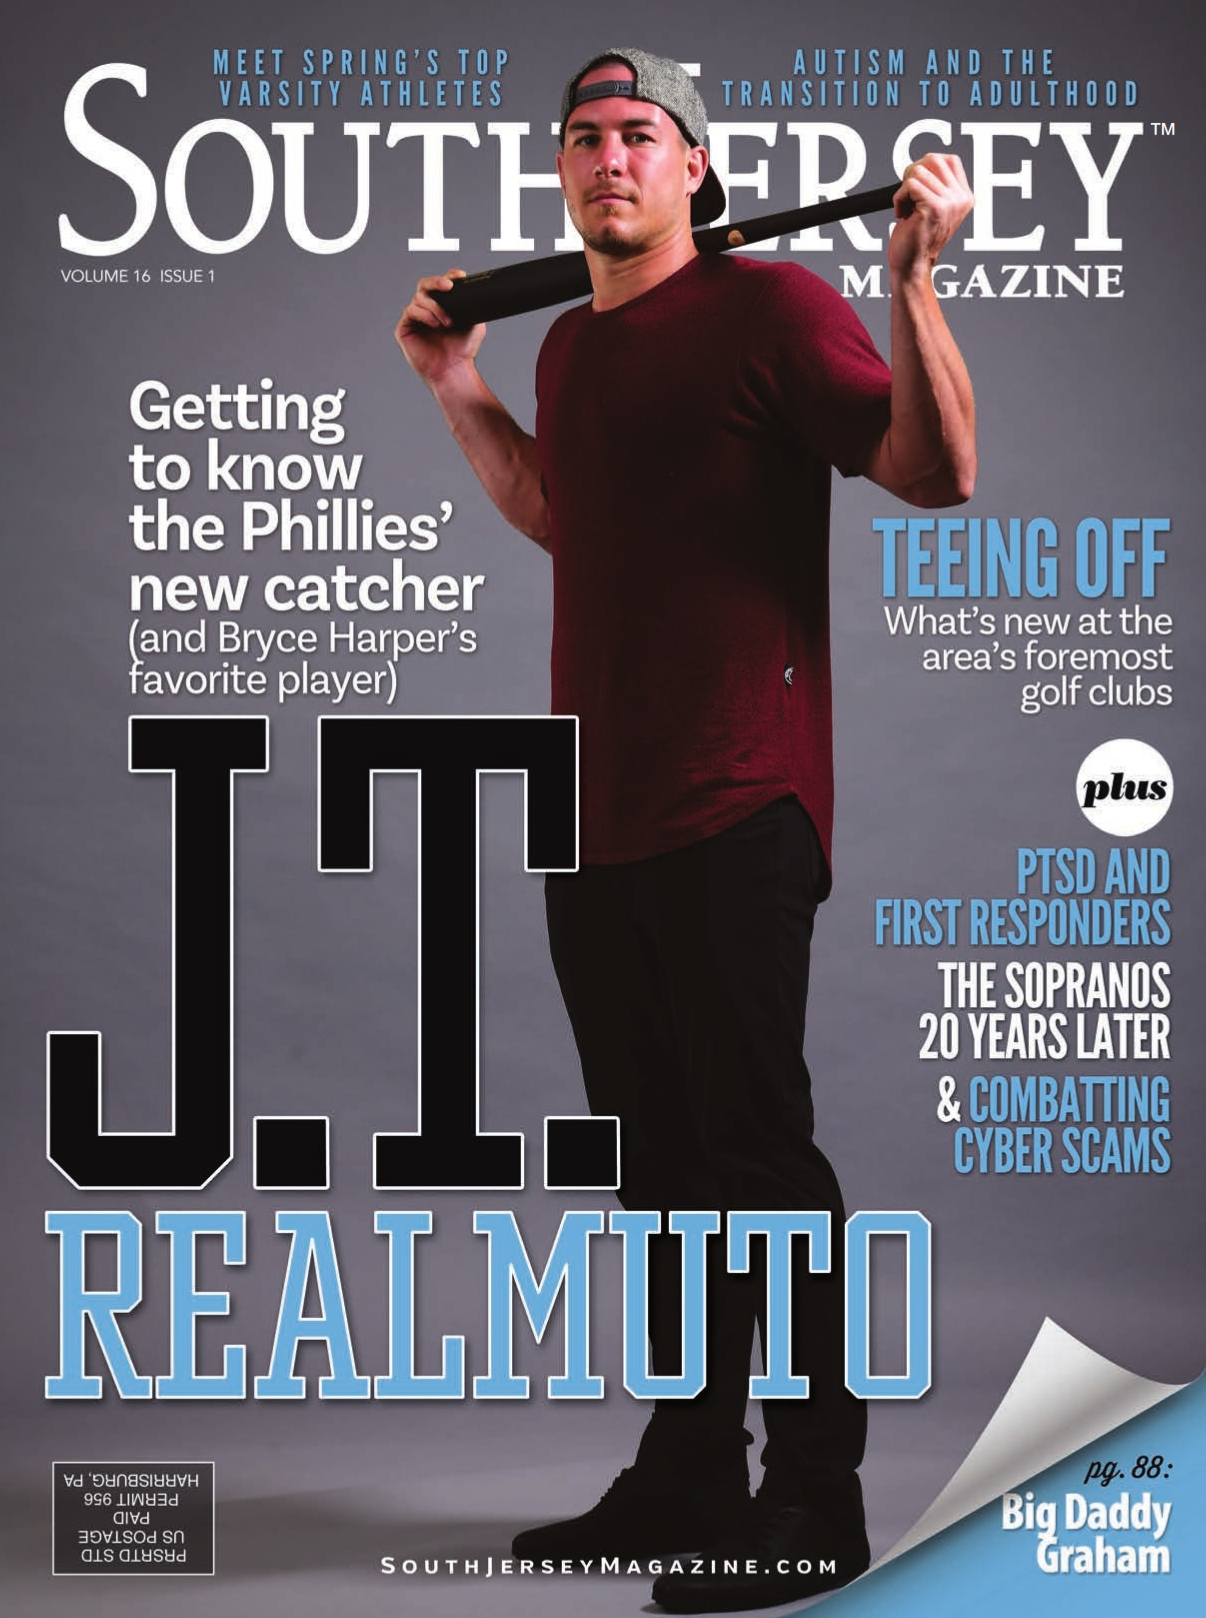 South Jersey Magazine April 2019 Issue